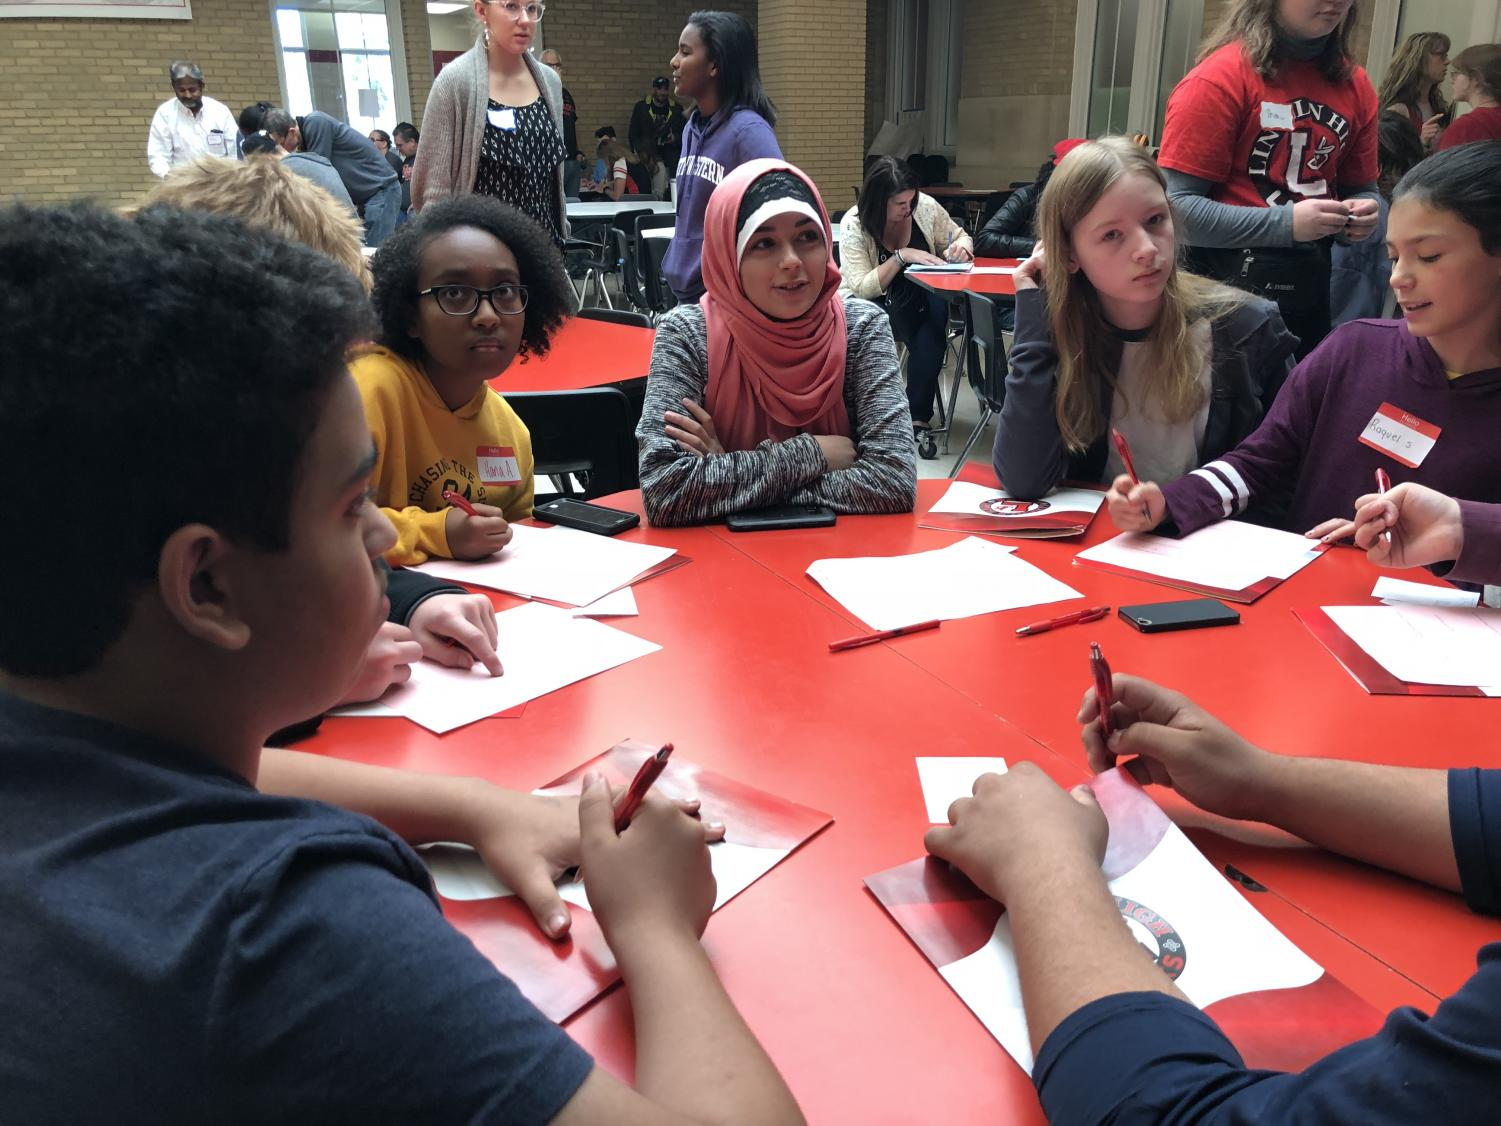 Possible future Pre-IB students gather at tables in the cafeteria in Lincoln High at IB Academy Day on October 27th, 2018. Advocate staff photo.